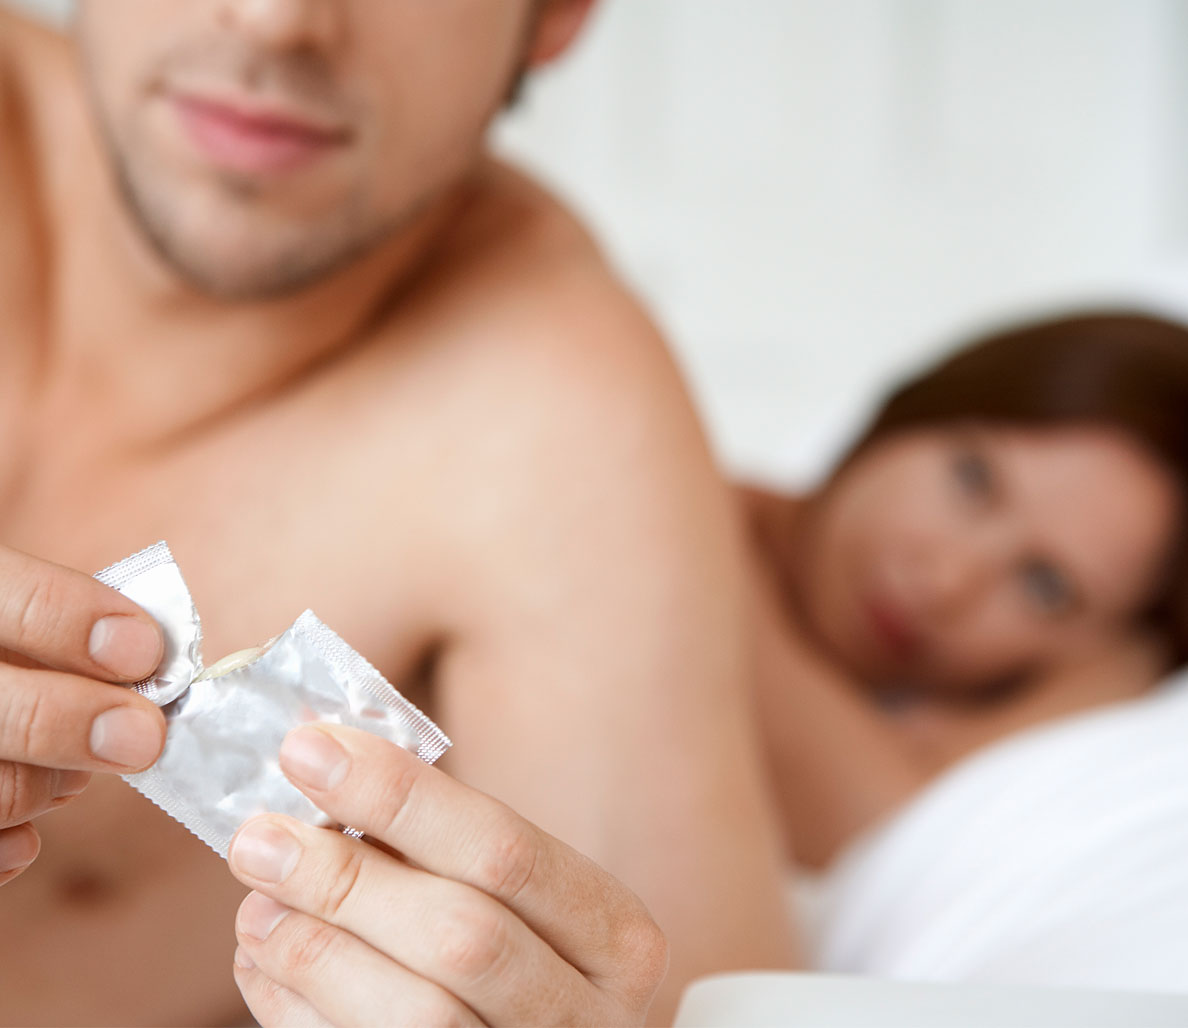 Ask Men's Fitness: I know how important safe sex is, but I can't finish if I'm wearing a condom.